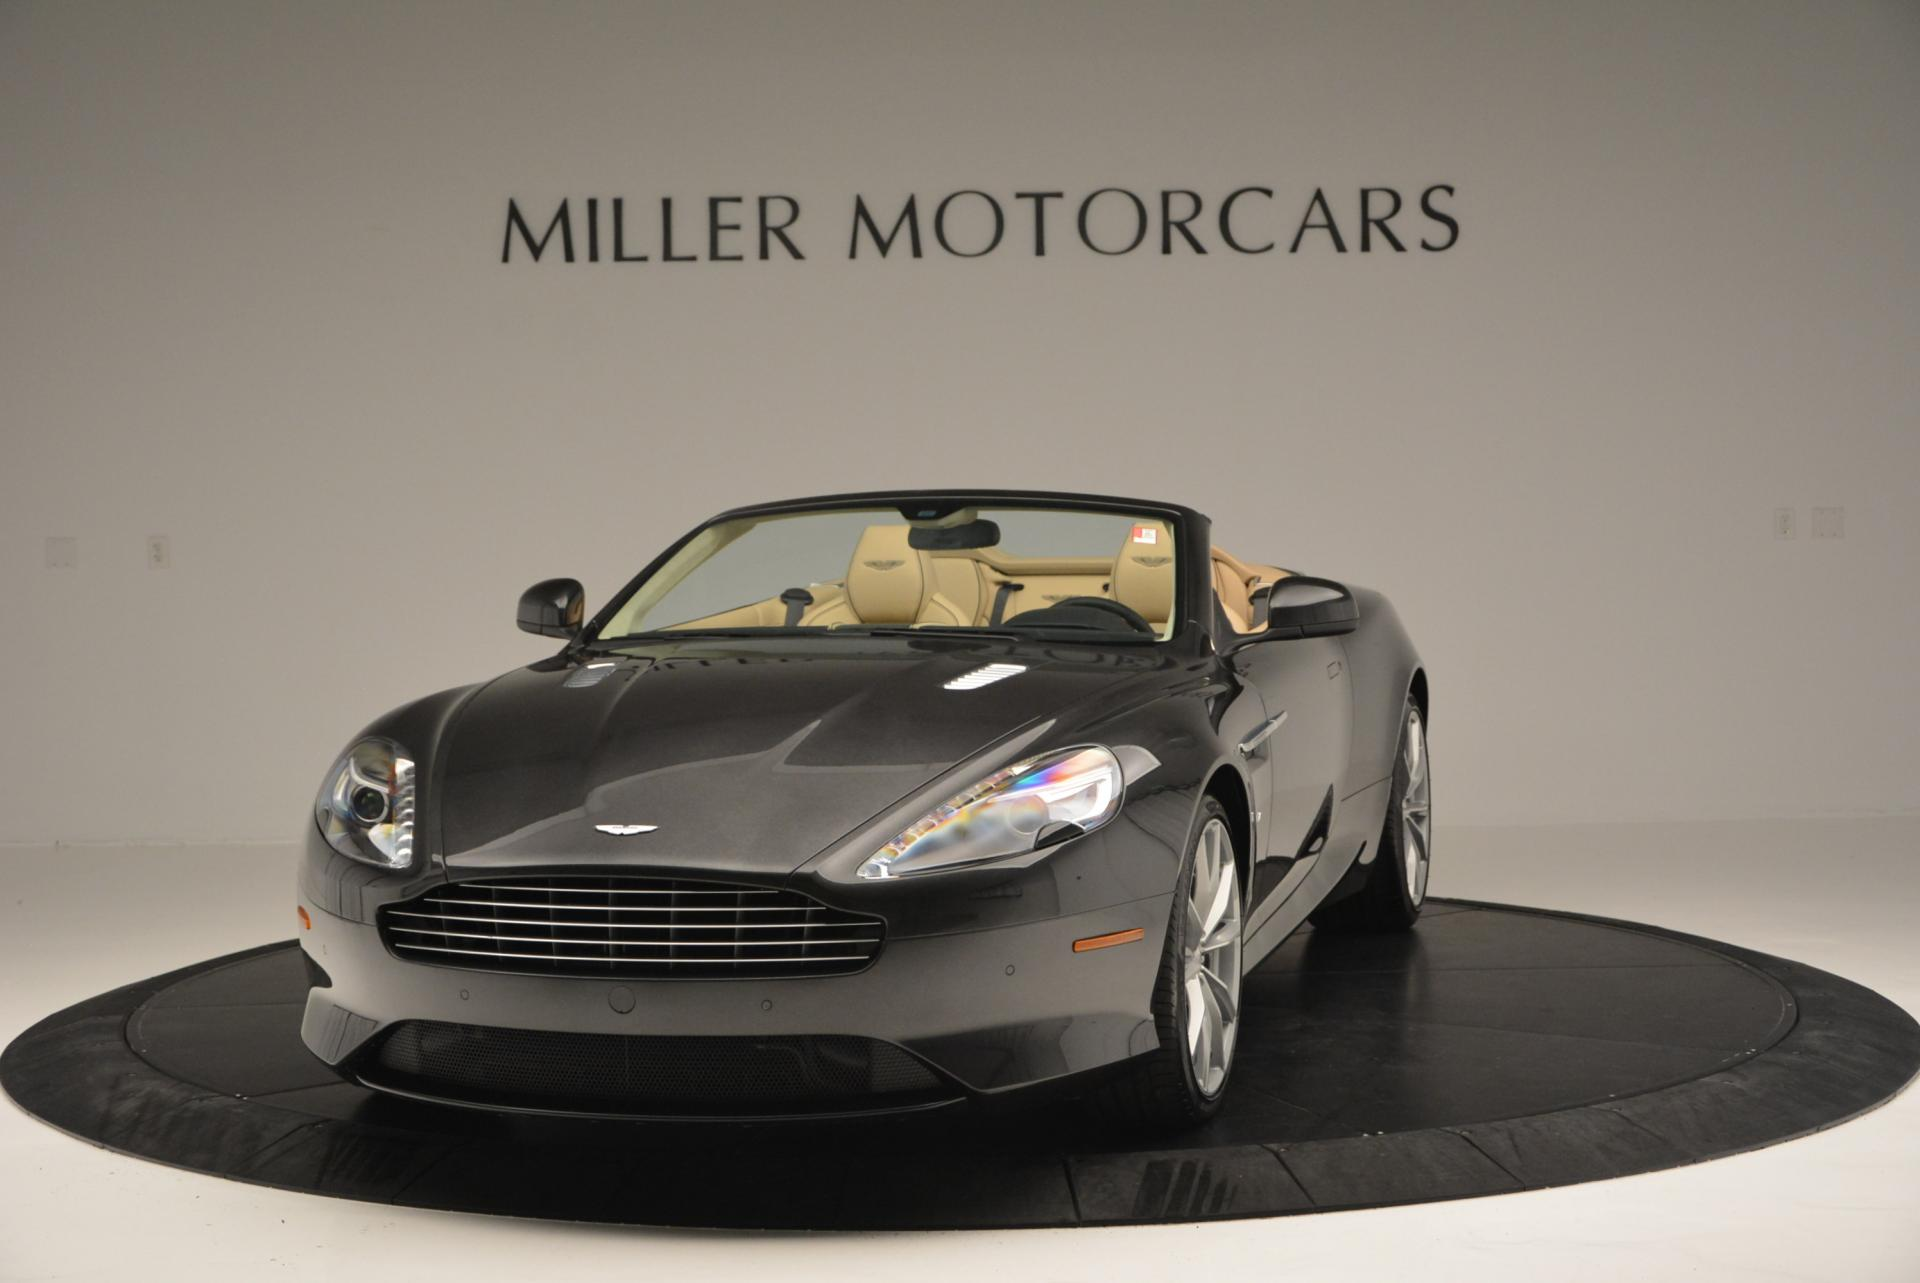 New 2016 Aston Martin DB9 GT Volante For Sale In Westport, CT 98_main